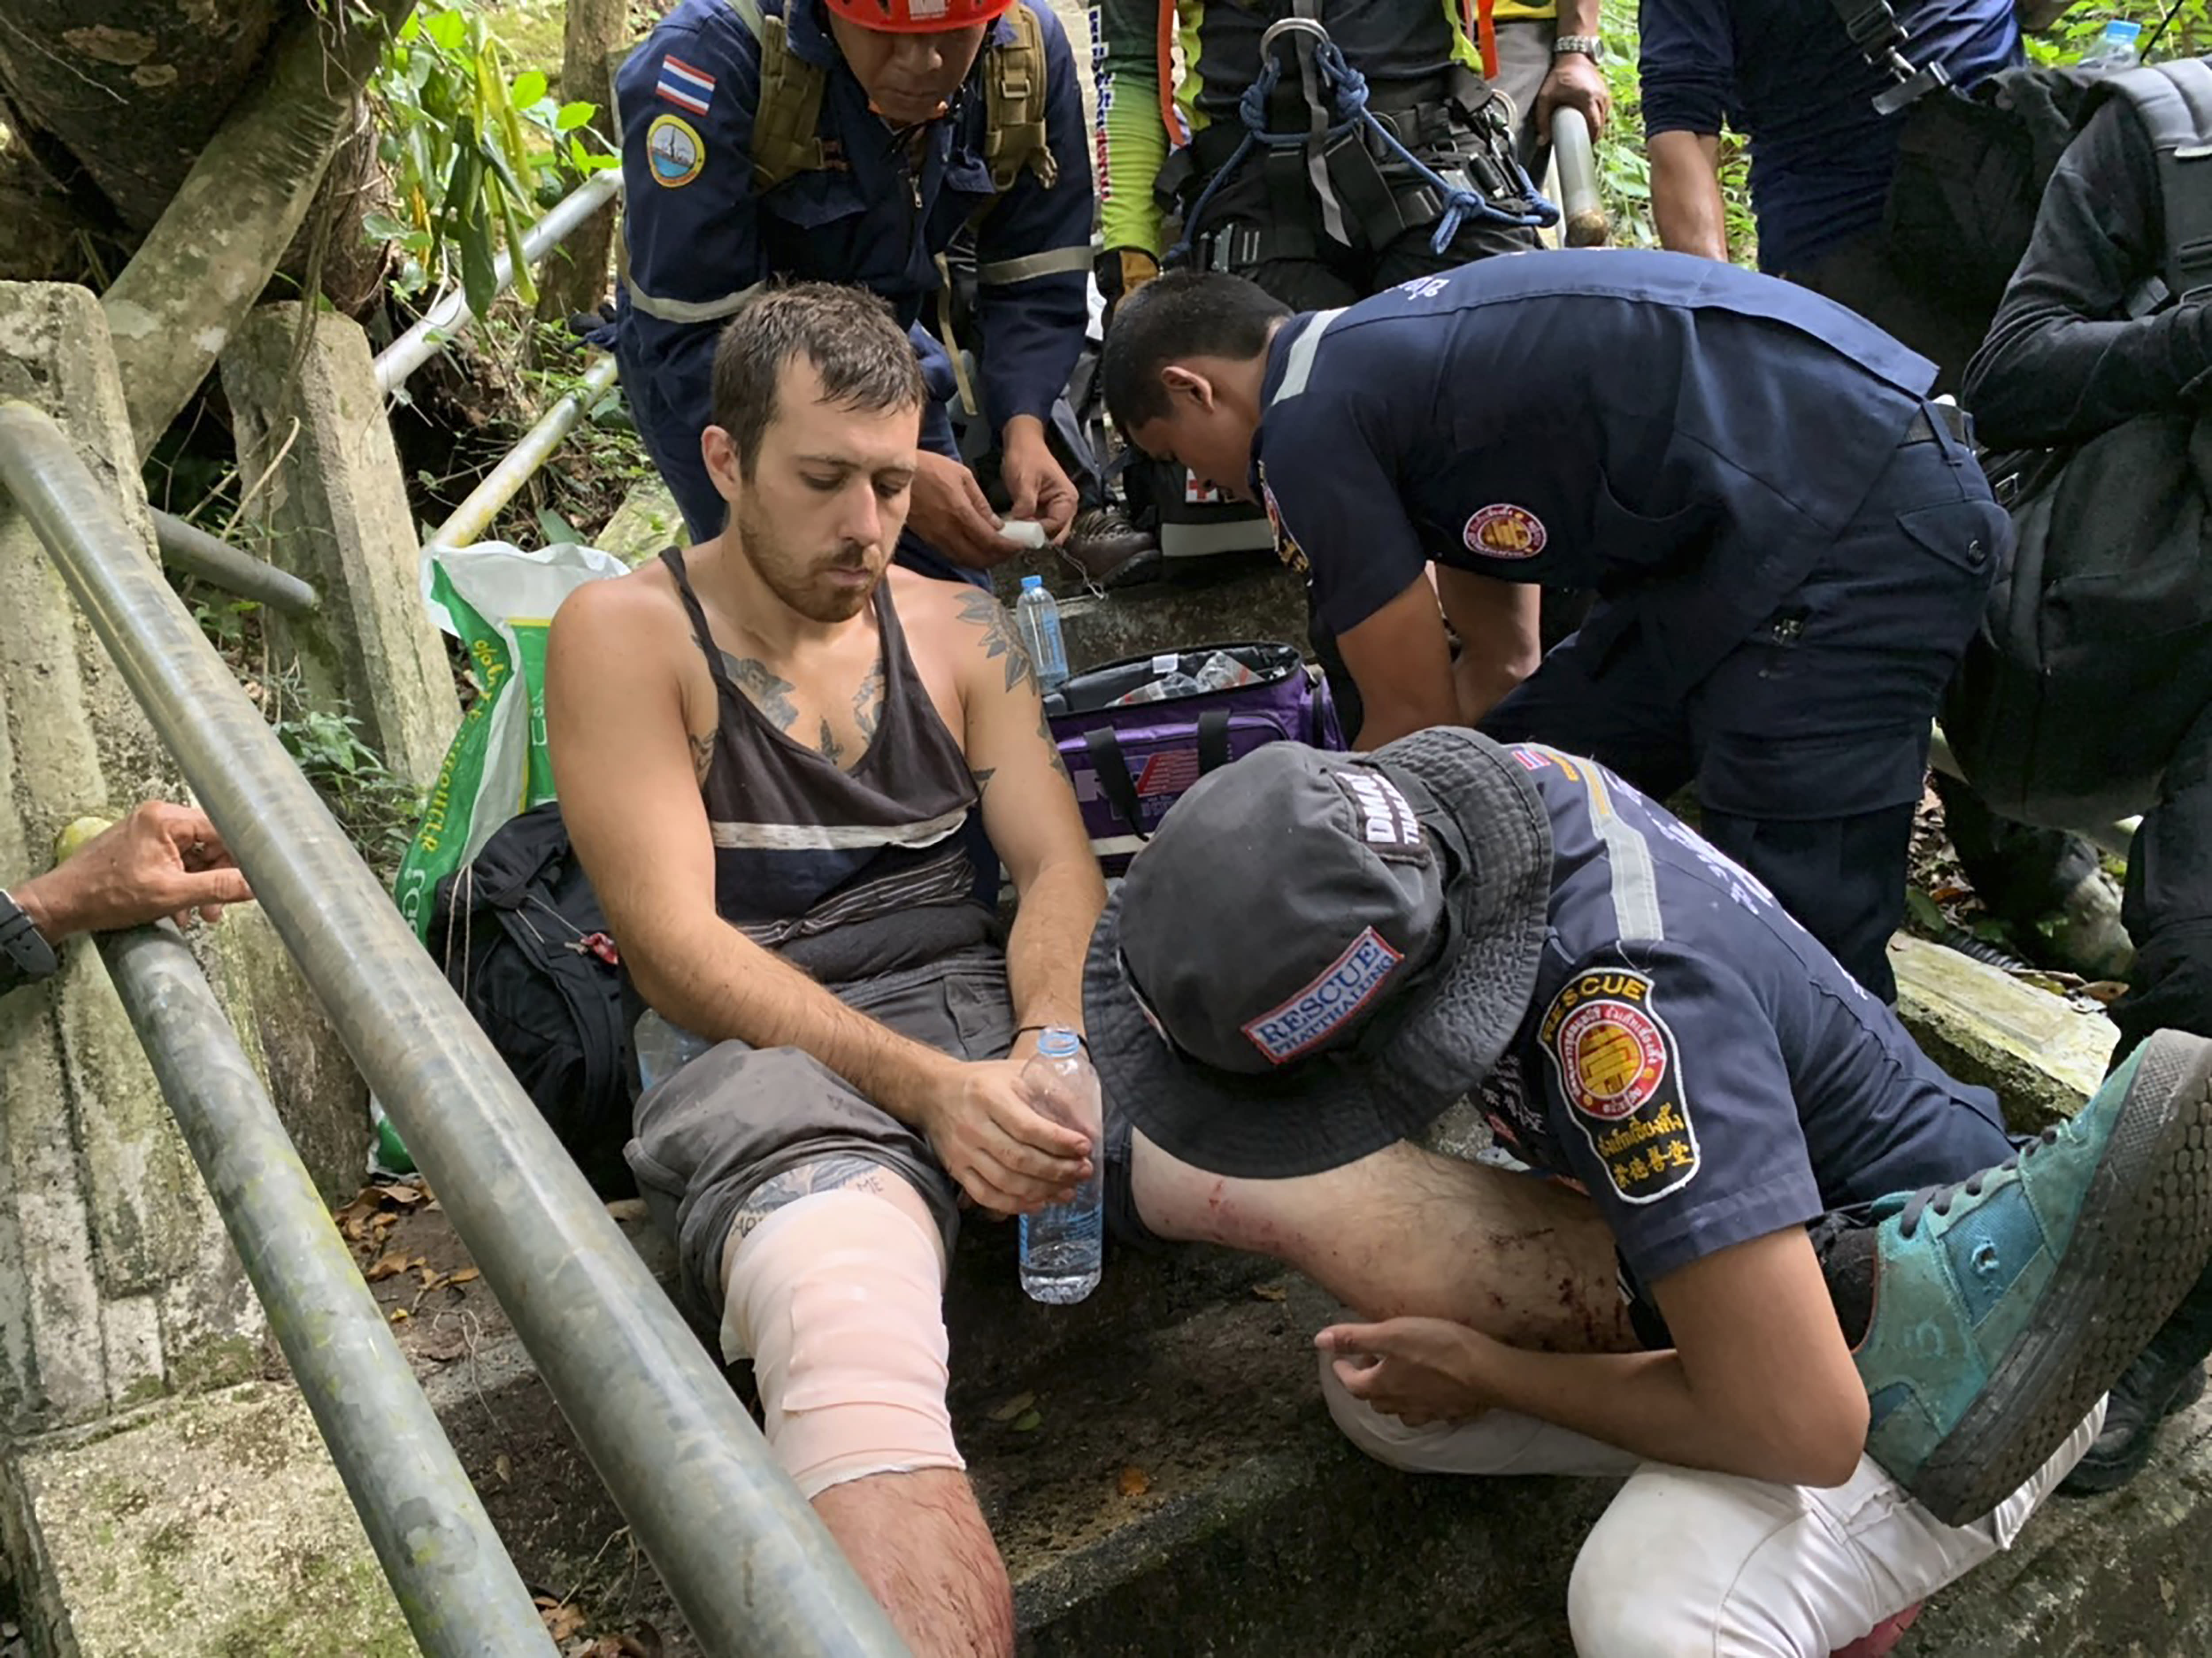 In this image released by the Phattalung Rescue Organization, a base jumper is treated after being rescued from the edge of a cliff, Monday, Jan. 13, 2020, in Phattalung, Thailand. An Austrian base jumper, Johannes Grasser, 28, was rescued in the southern Thai province after being stuck on a near vertical cliff for hours when his parachute caught a rock's edge, almost 200 meters (656 feet) above the around. (Phattalung Rescue Organization via AP)